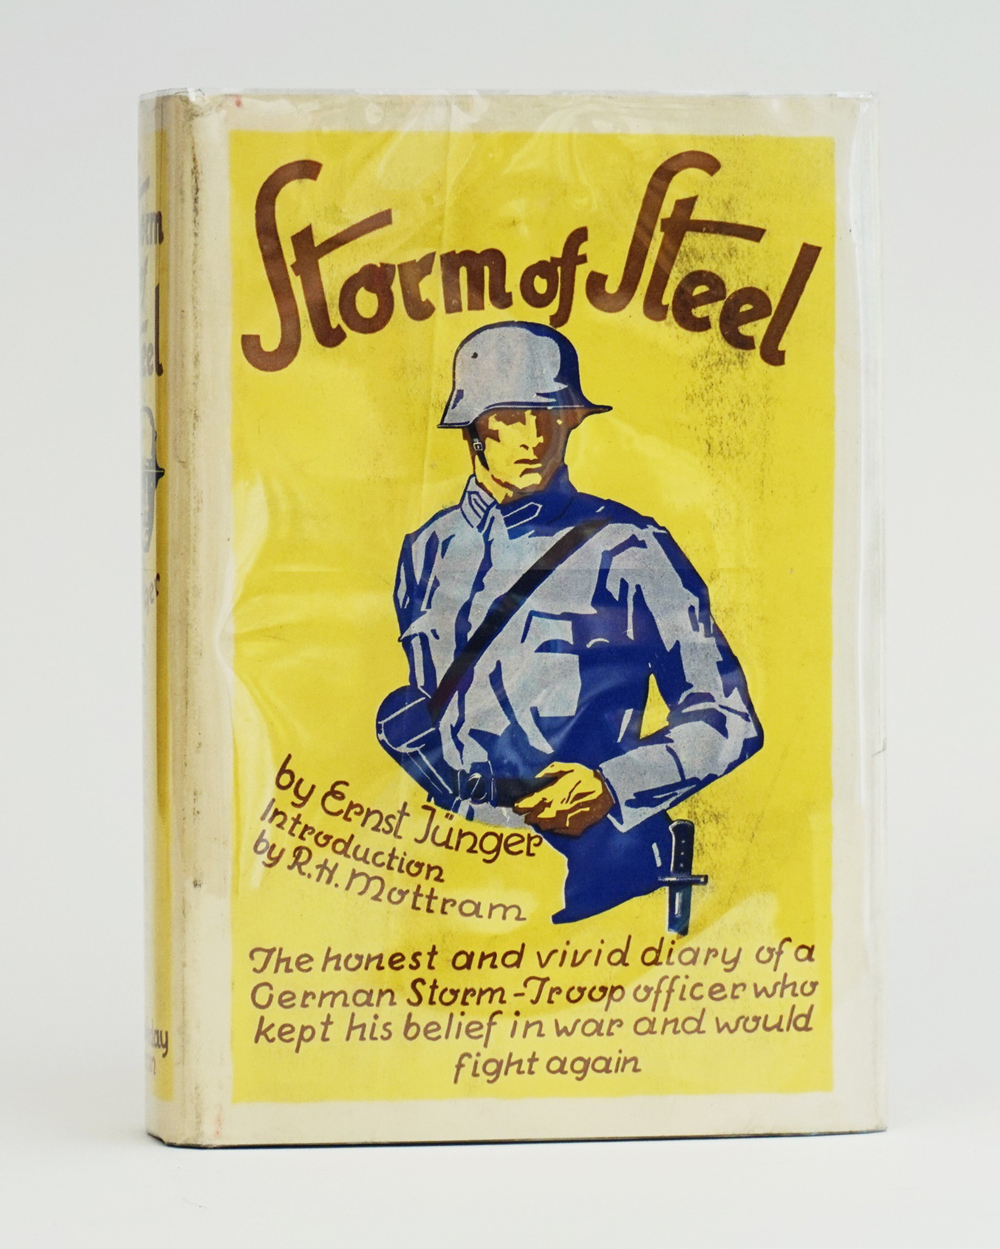 Storm of Steel. New York: Doubleday Doran & Co, 1929.